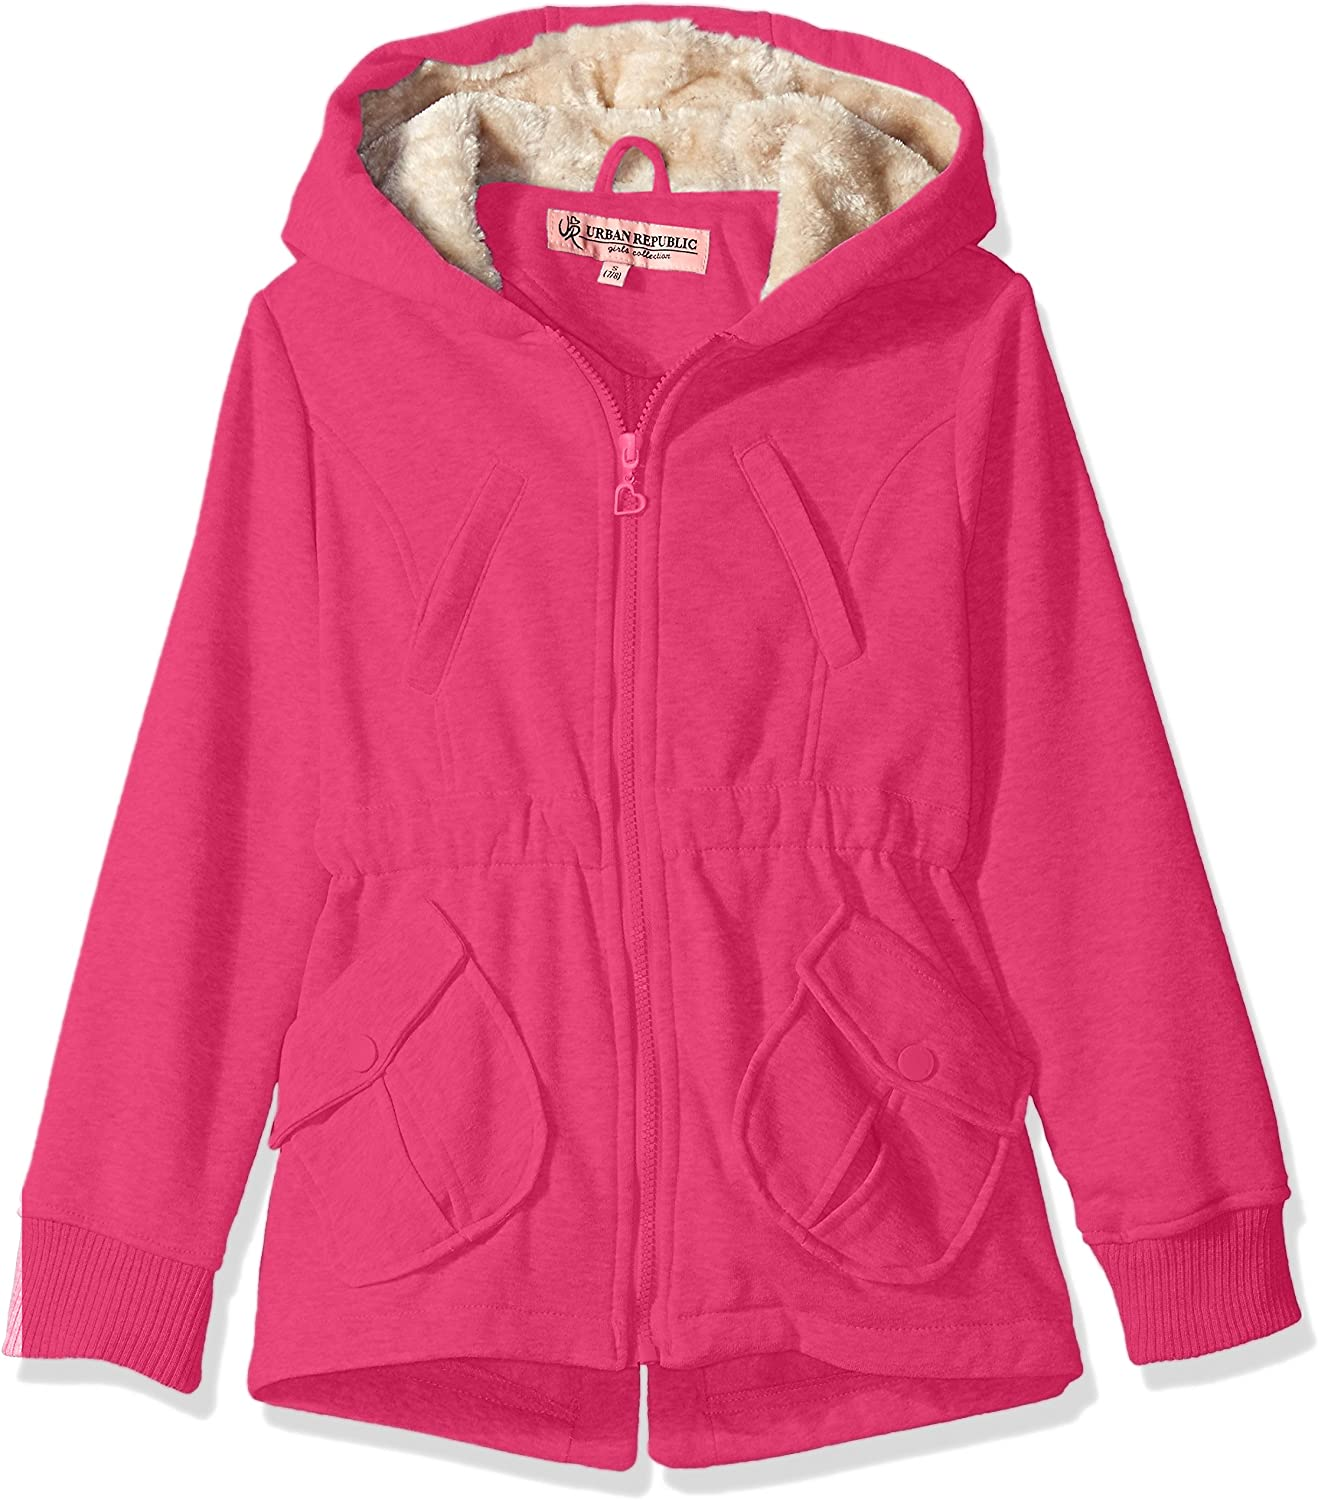 best quality preview of footwear Amazon.com: Urban Republic Girls' Little Fleece Jacket, Neon Pink ...